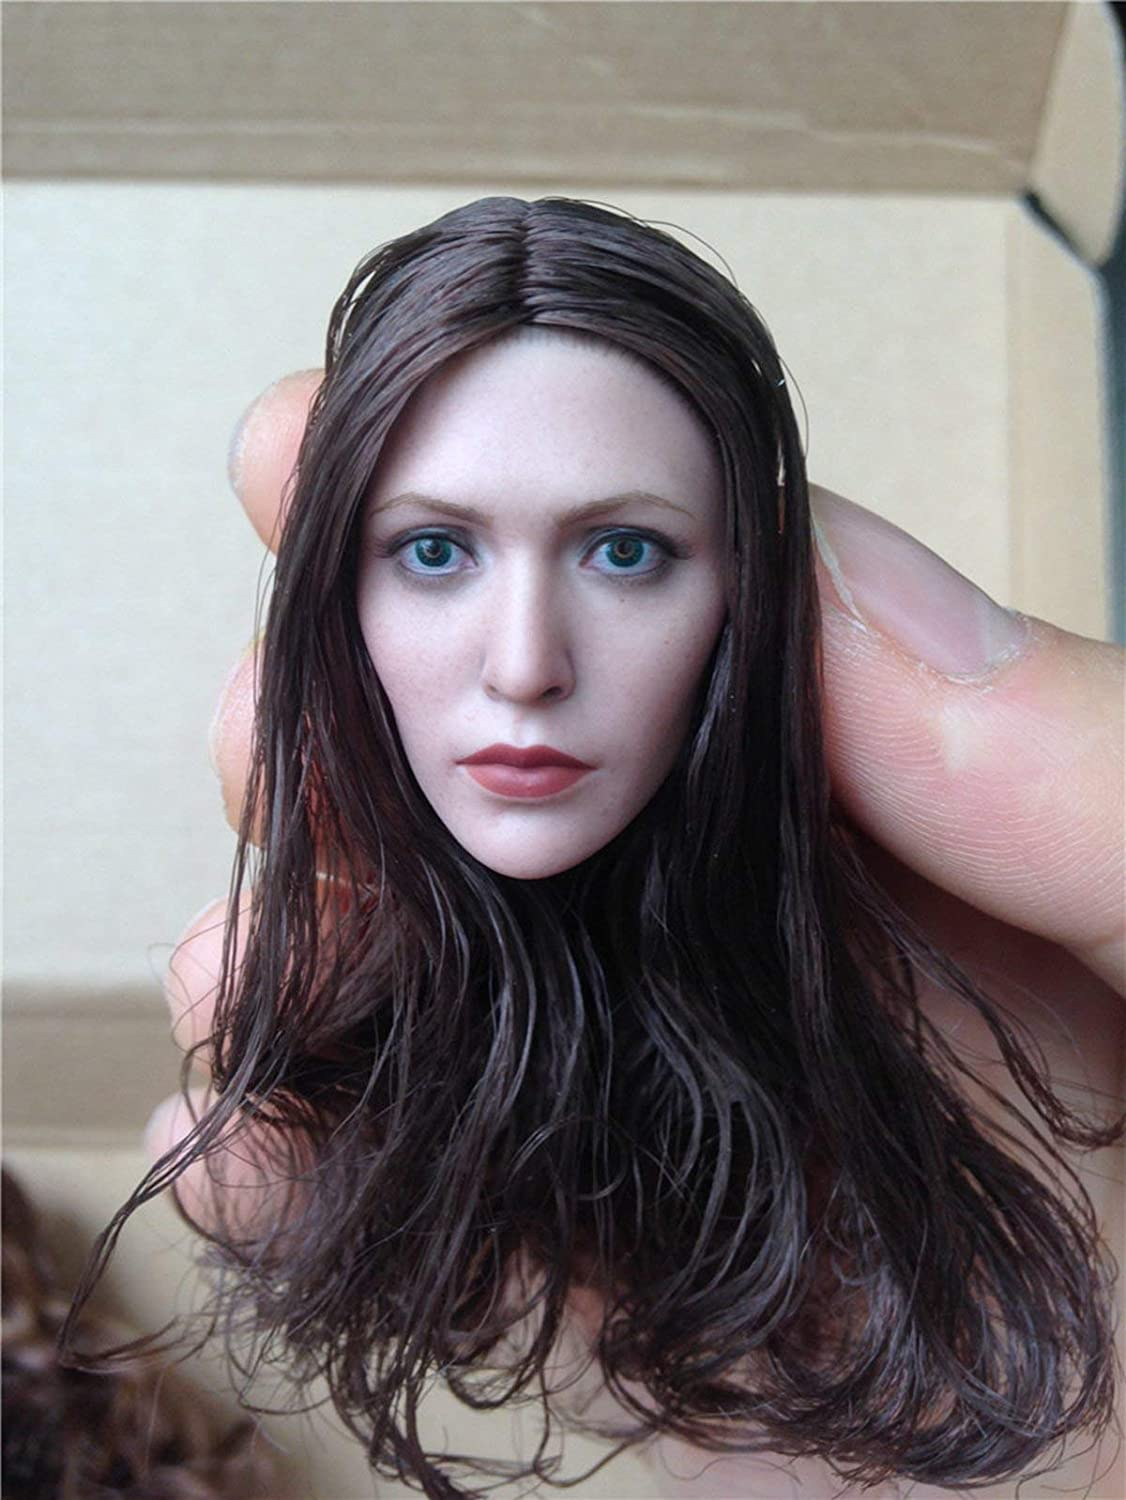 ZSMD Witch Head 1/6 Scale Female Carving Action Figure Head Sculpt Planted Hair Head Movie Star Eurpon